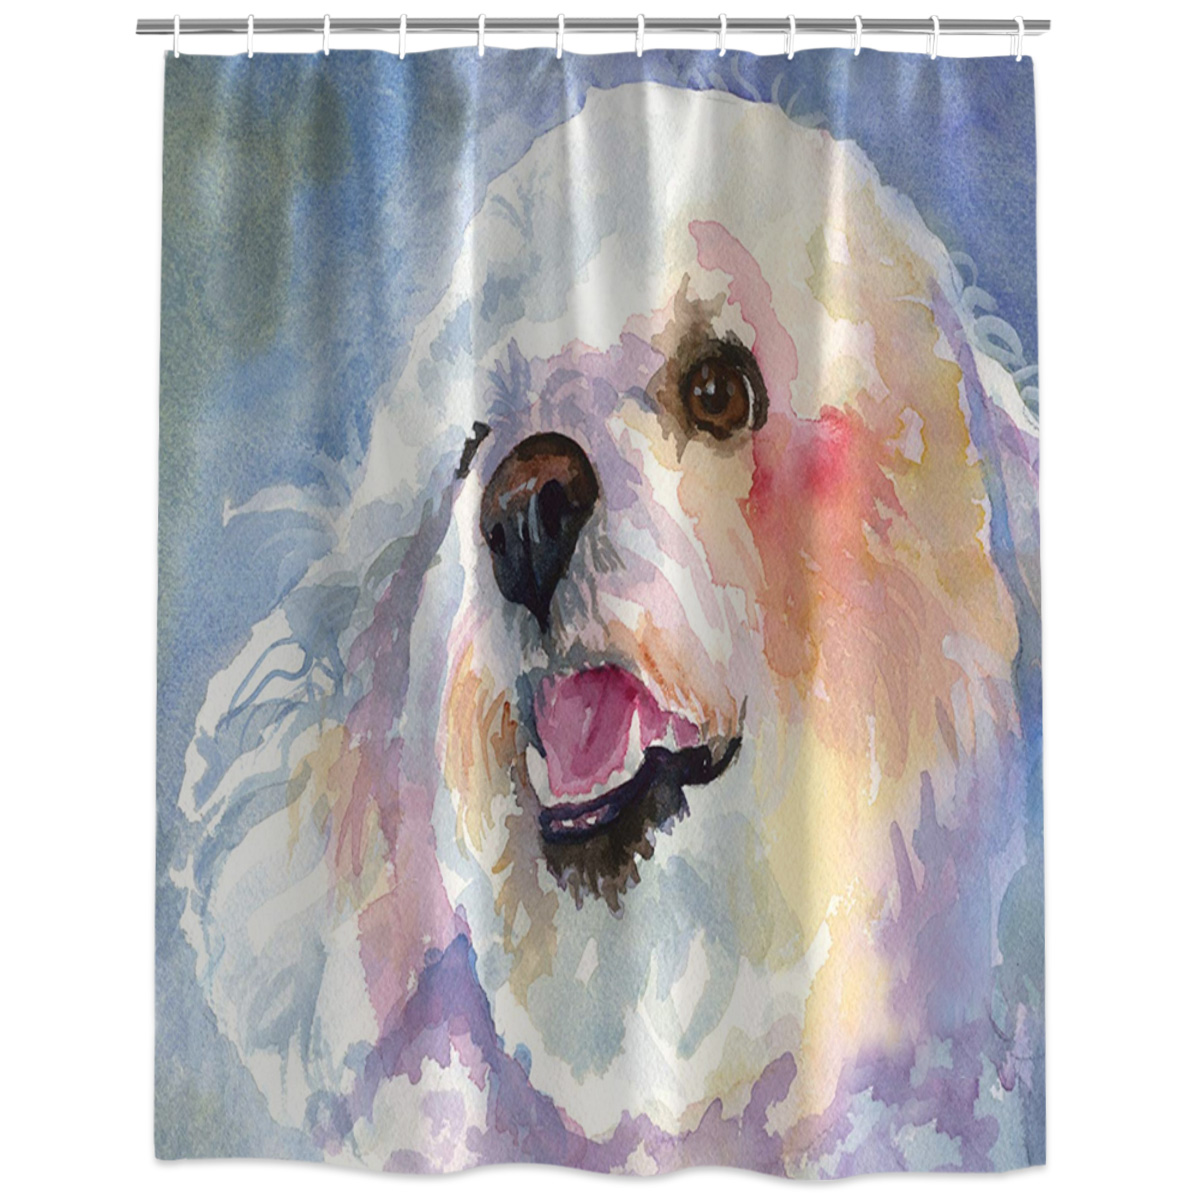 Latest Collection Of Greys Anatomy Cristina Yang Home & Garden Decorative Fabric Shower Curtain Moderate Price Shower Curtains